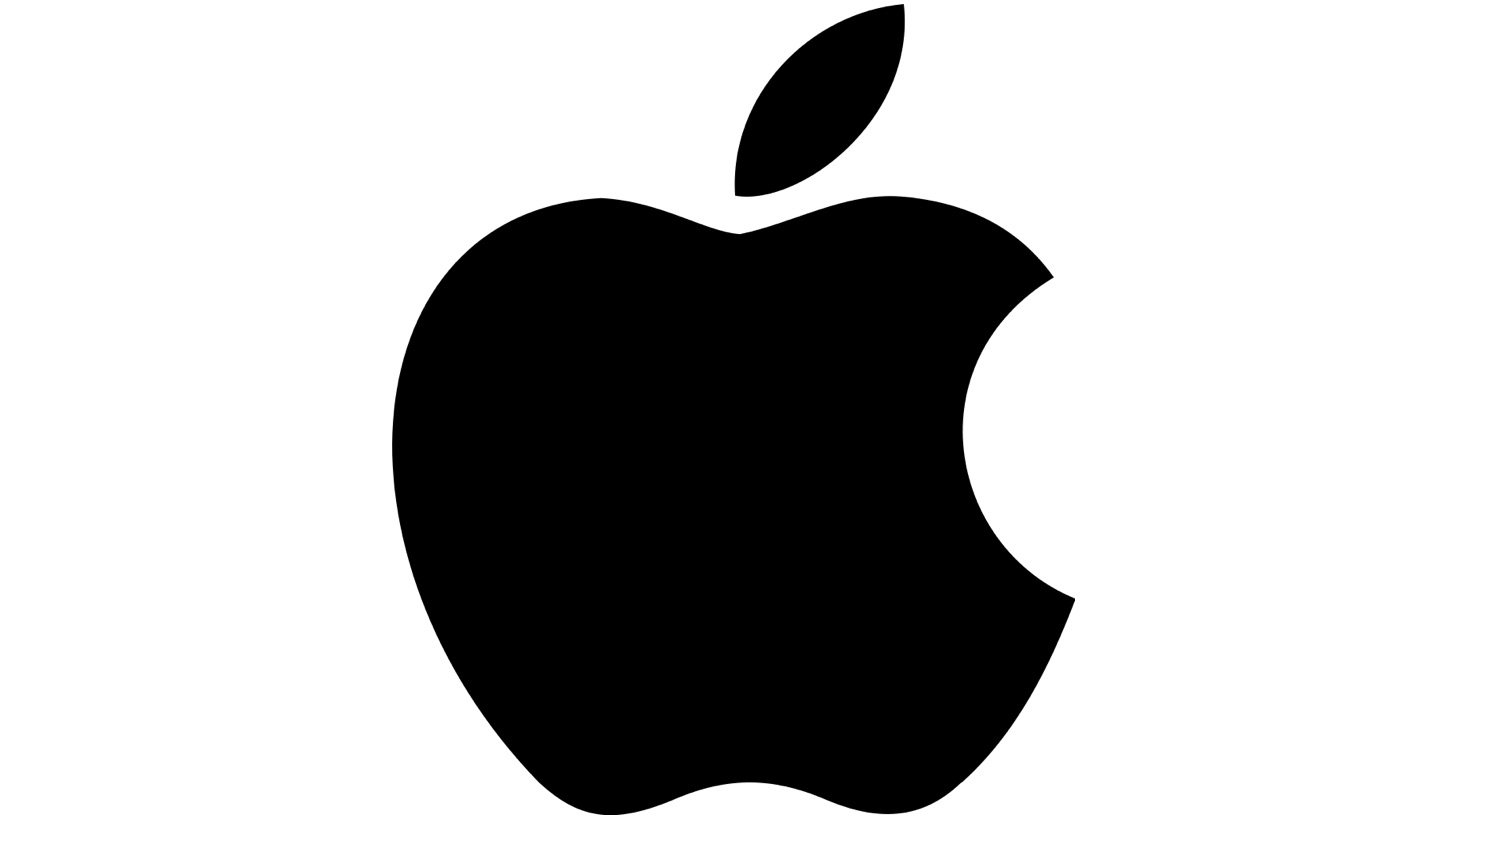 Trump Administration Subpoenaed Apple for Data on Two House Intelligence Committee Democrats